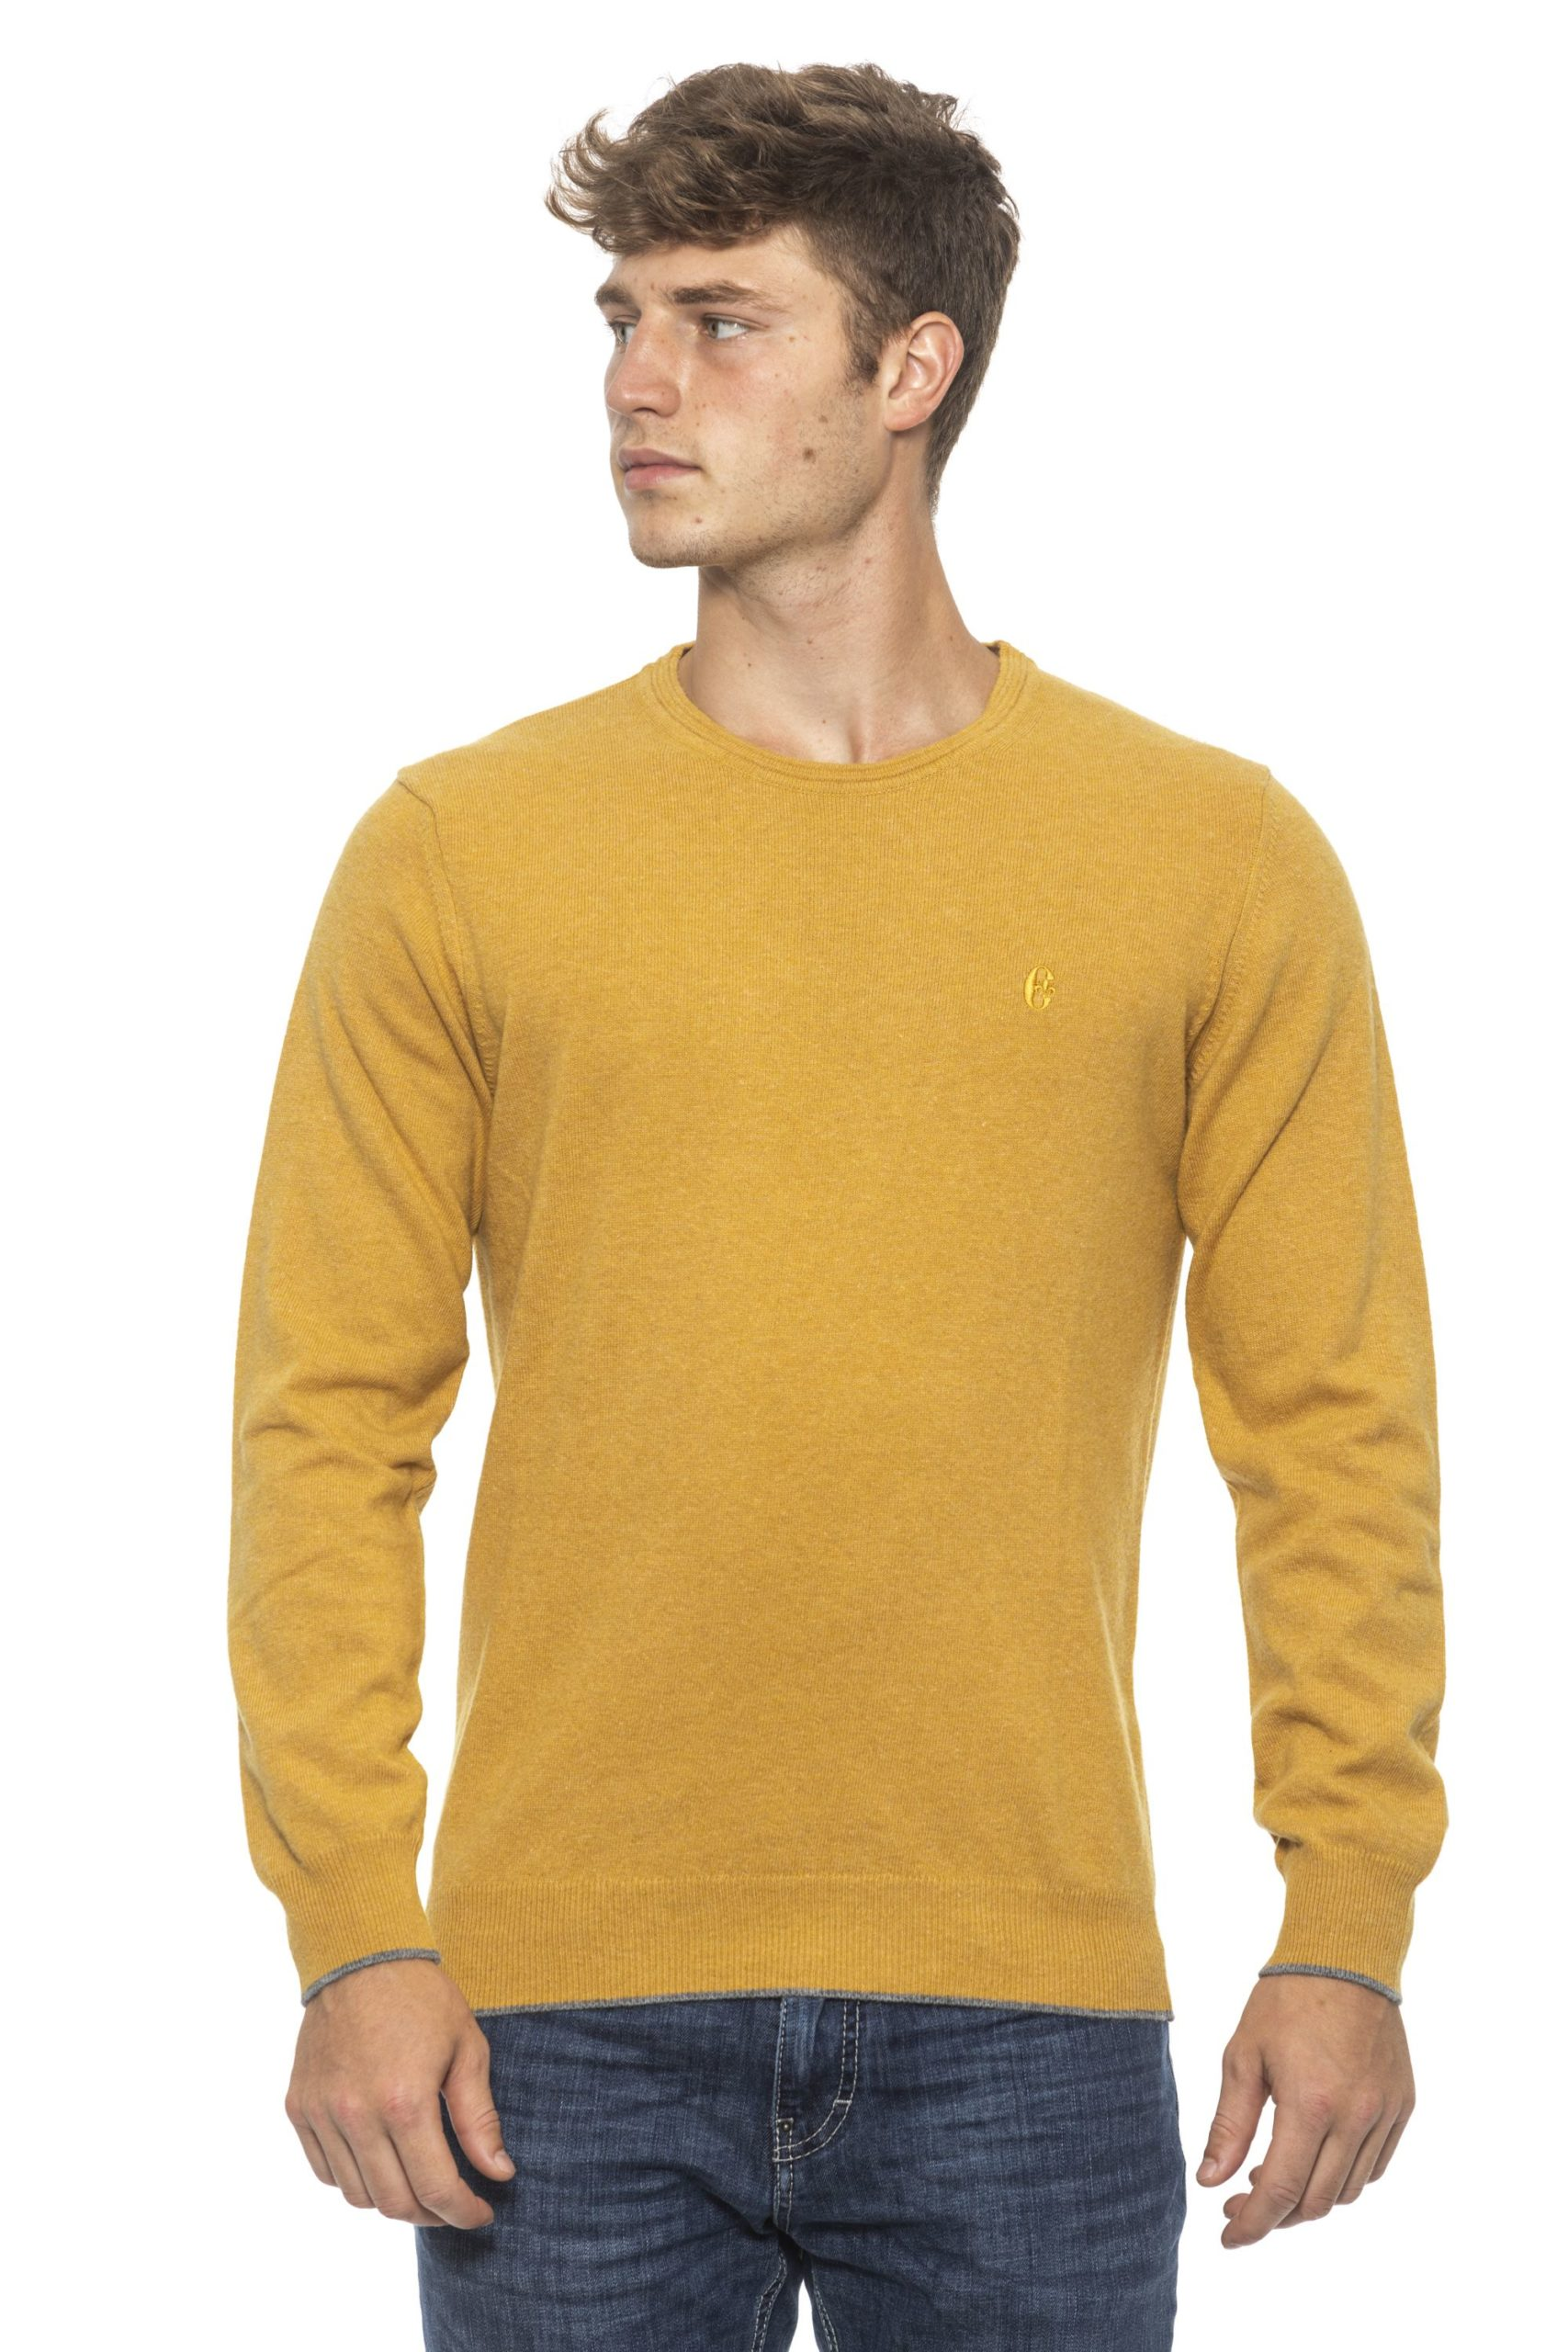 Conte of Florence Men's Sweater Yellow CO1272779 - S